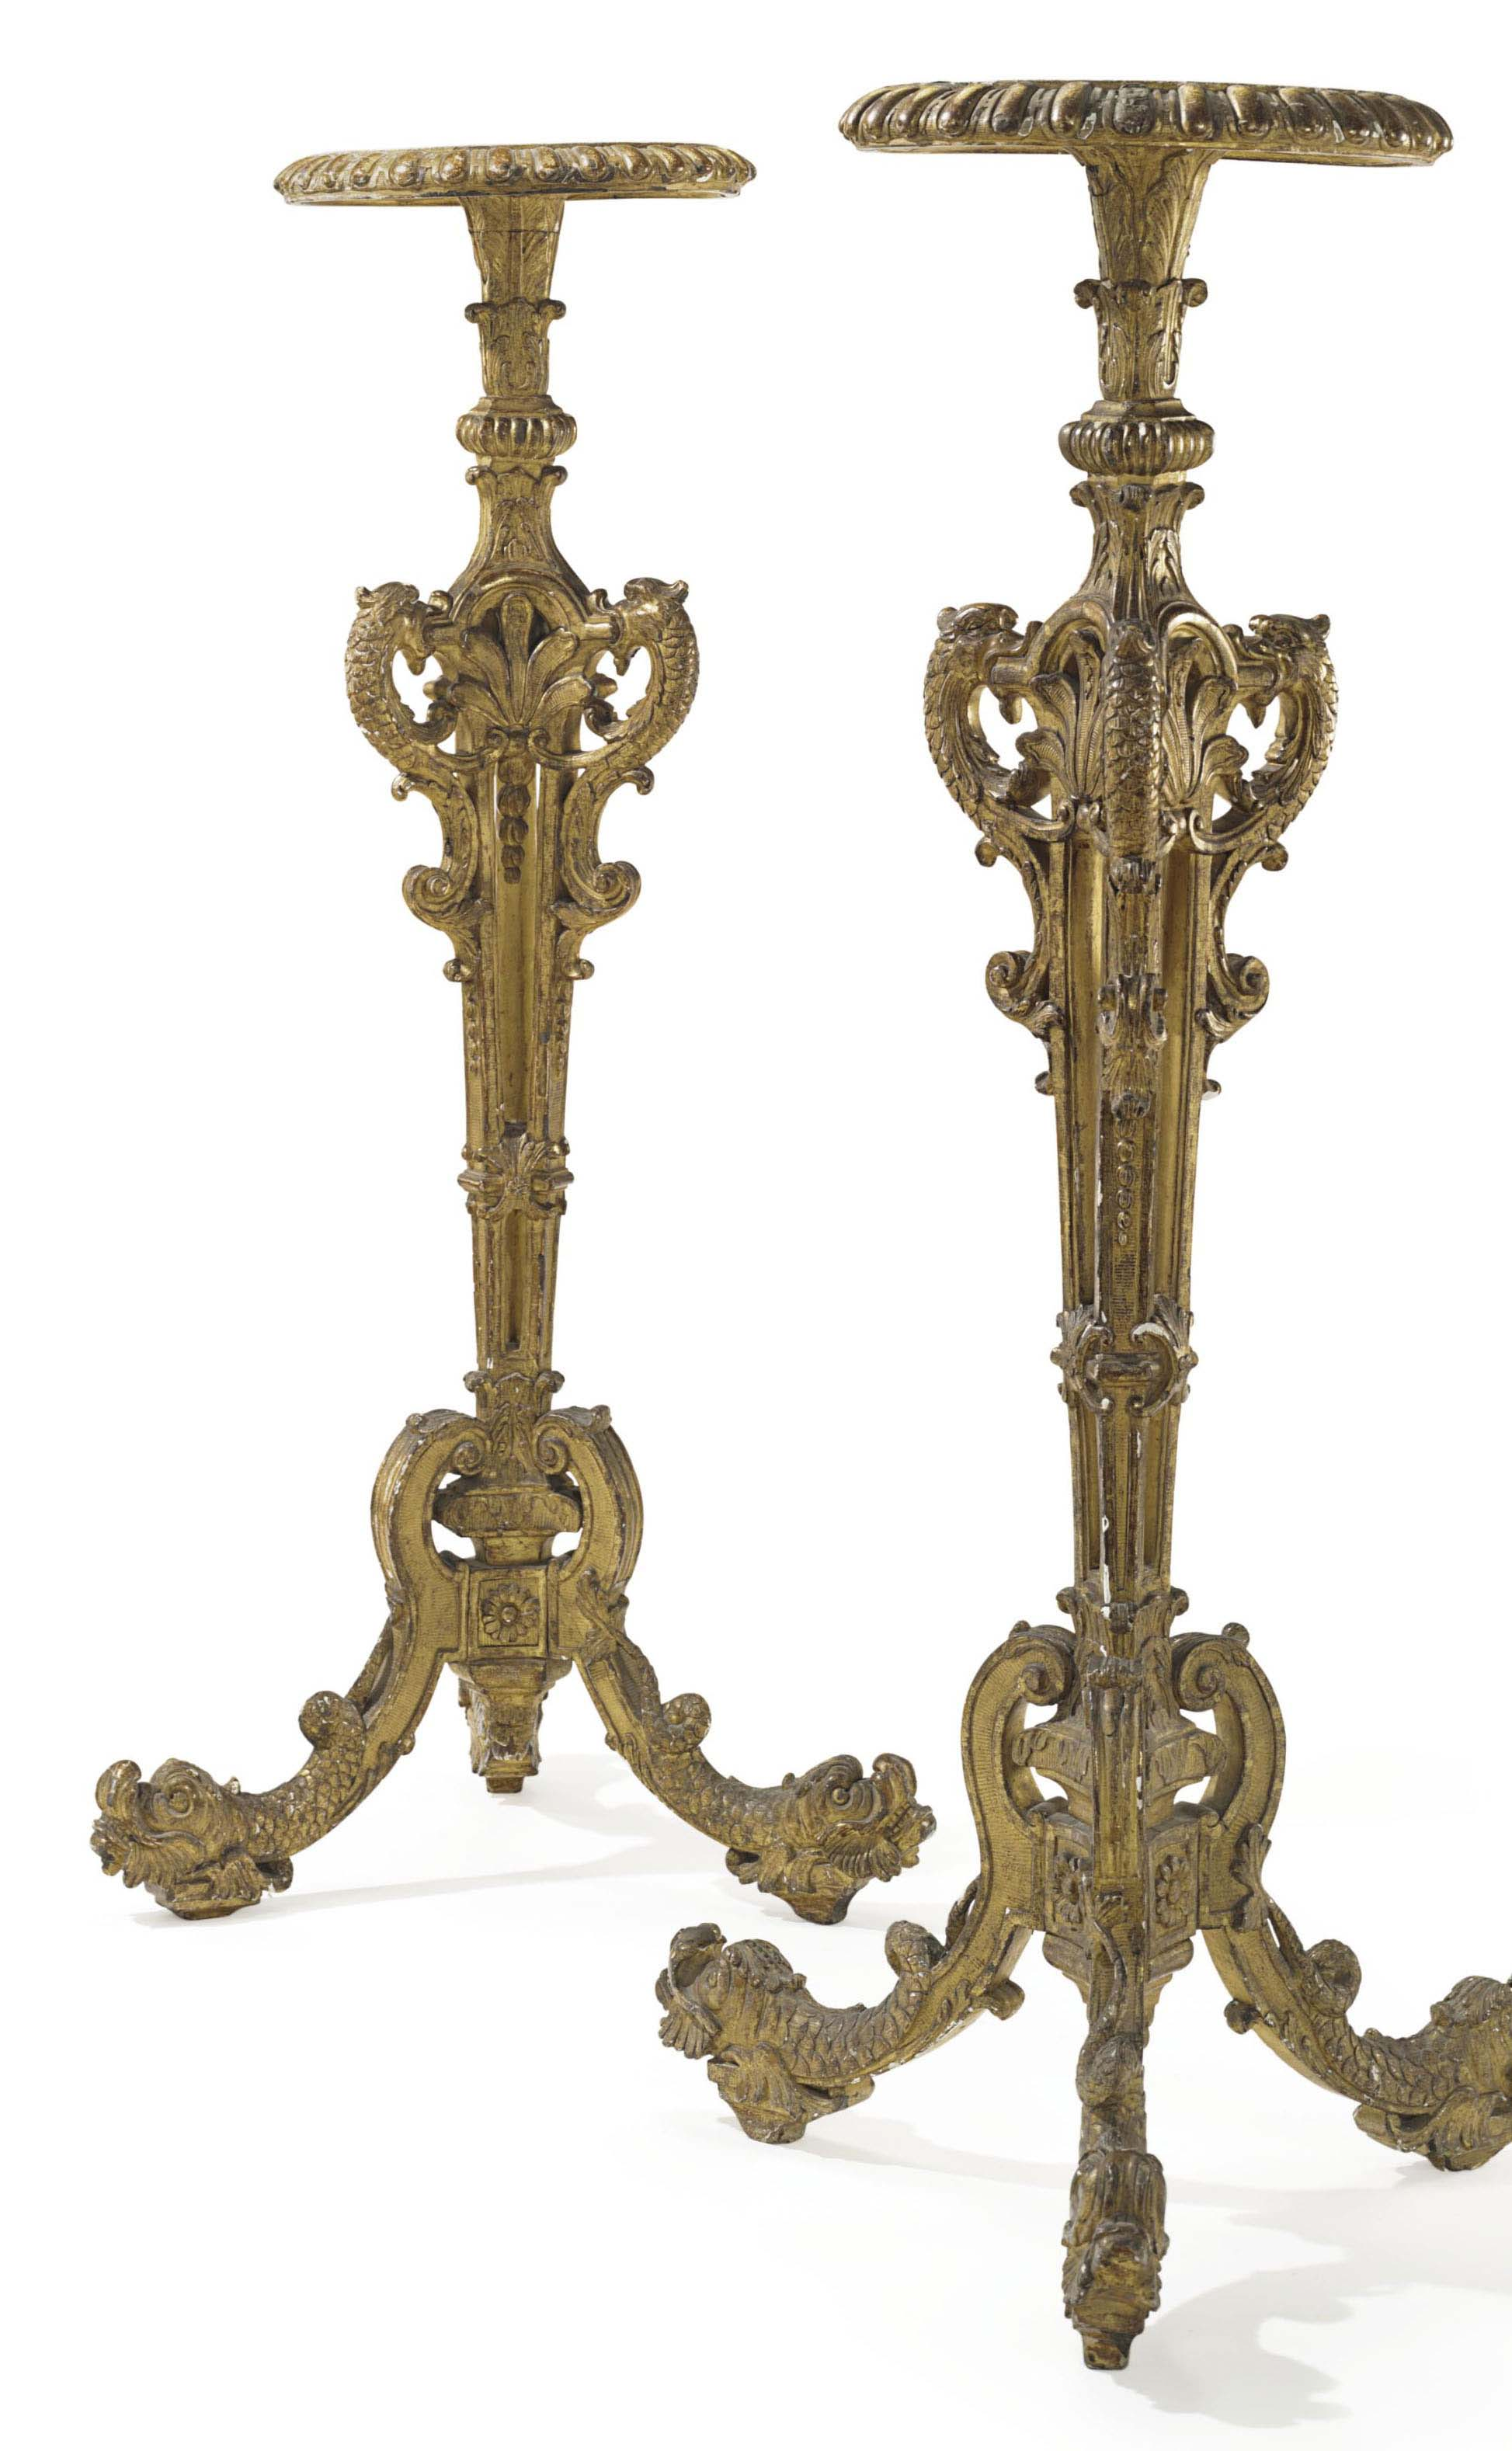 A PAIR OF FRENCH GILTWOOD TORCHERES